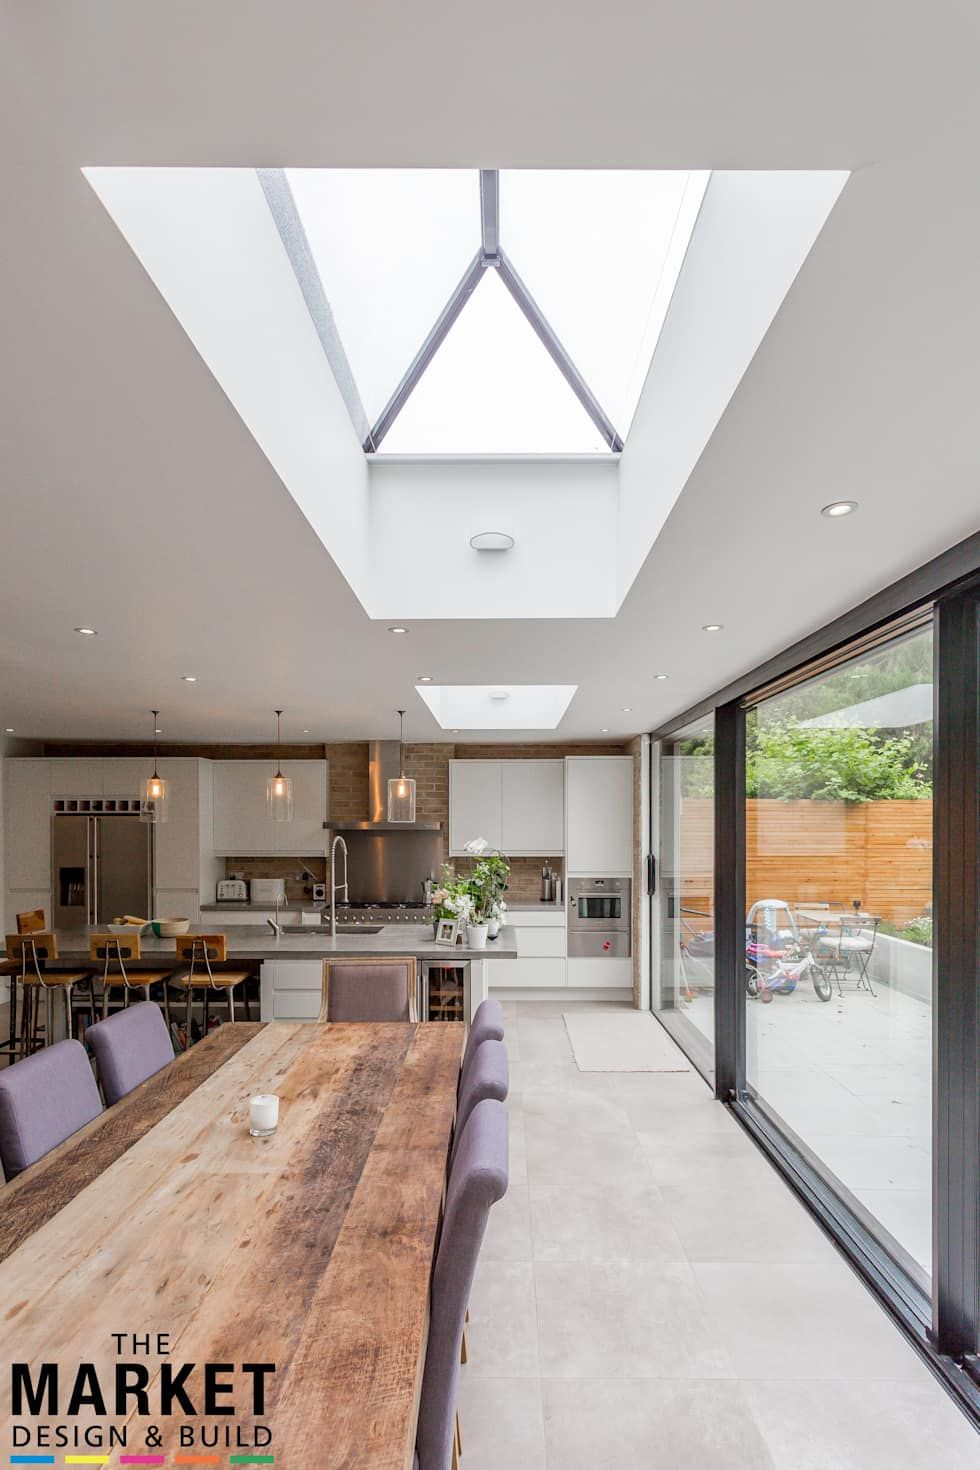 Stunning North London Home Extension And Loft Conversion Modern Dining Room By The Market Design Build Modern Open Plan Kitchen Living Room Dining Room Design Interior Design Kitchen